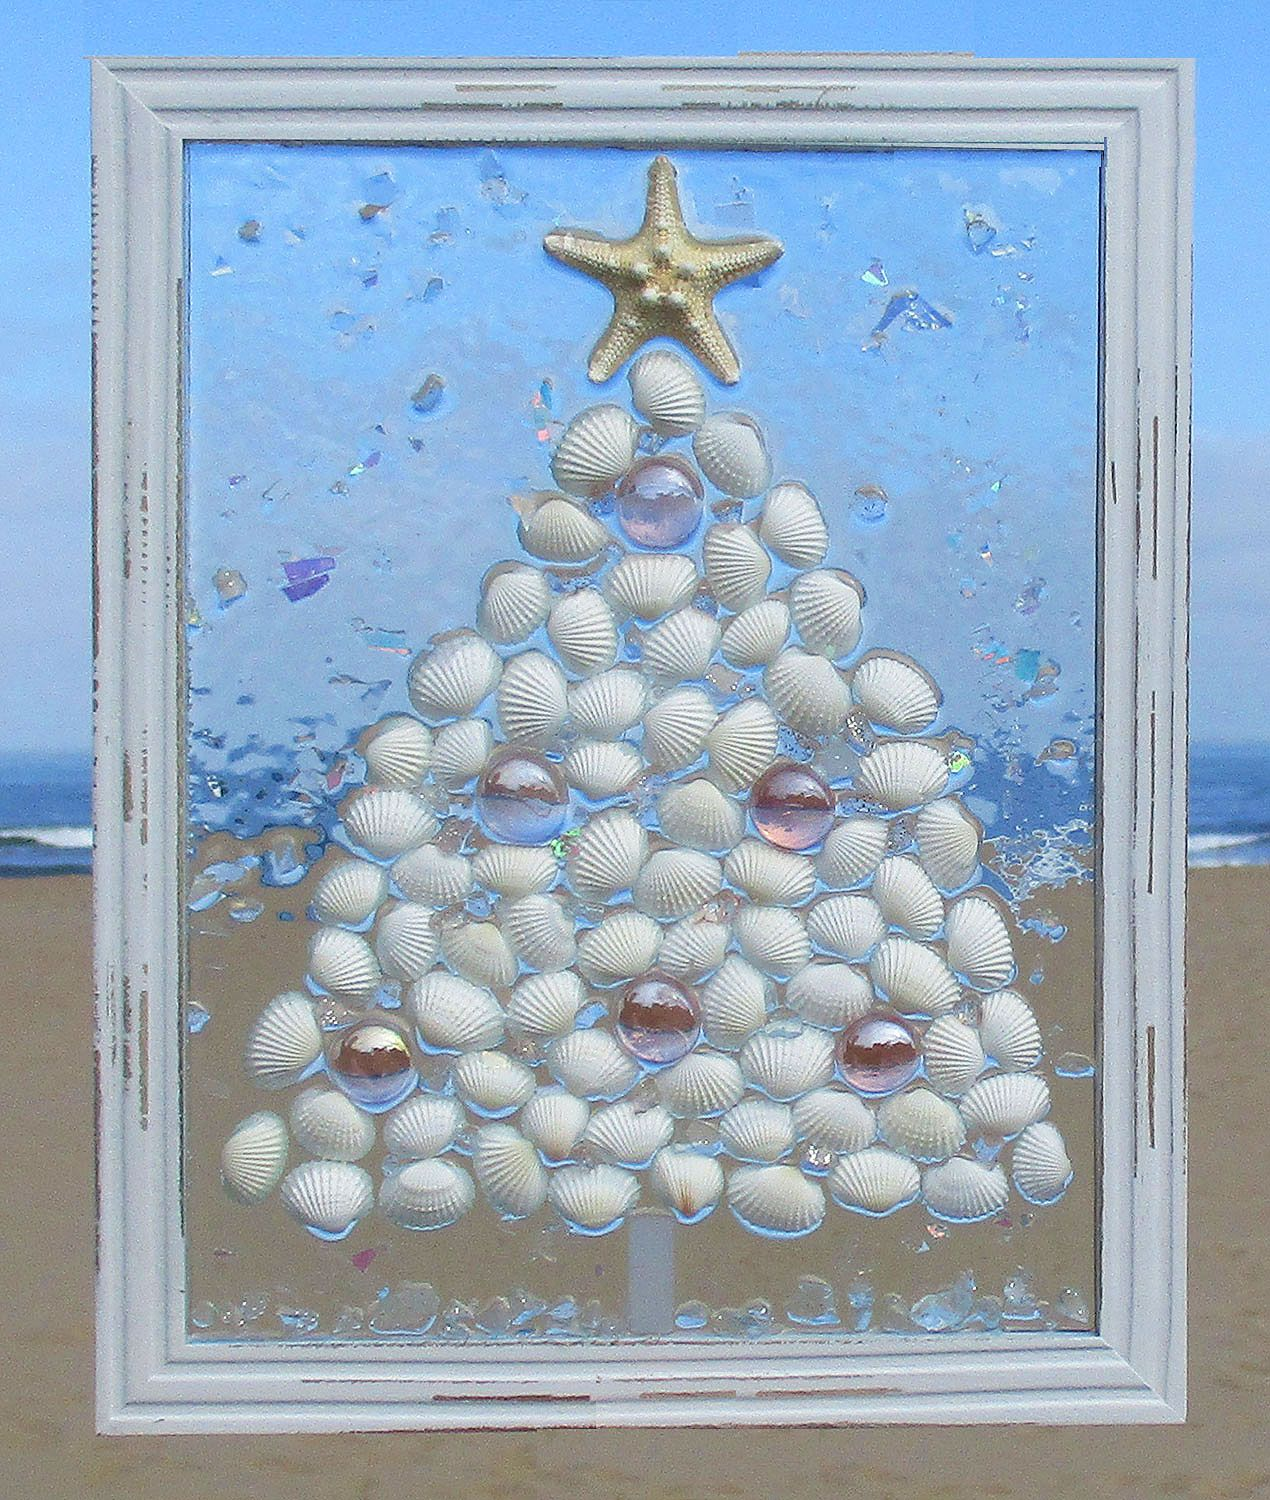 Unique Beach Window Art By Luminosities Christmas Tree Made Of White Shells Pink Gems Surrounded By S Sea Glass Art Projects Sea Glass Crafts Window Art Diy